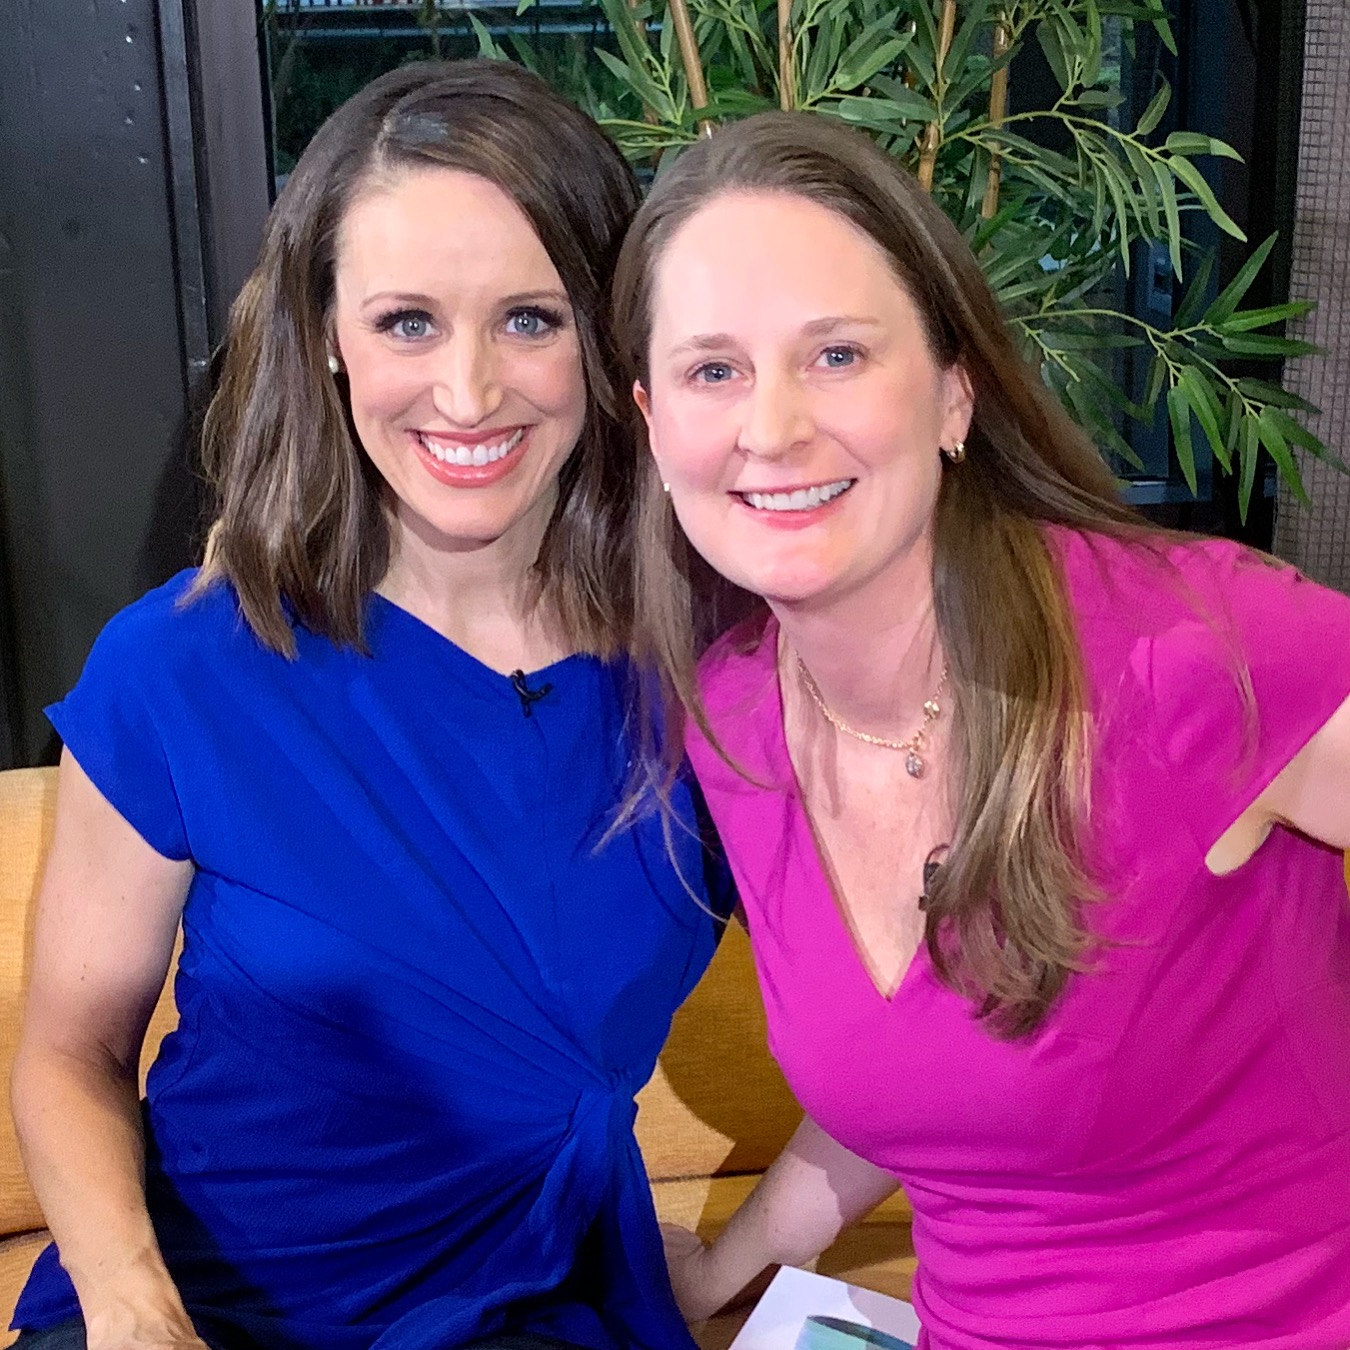 Here on King 5 News Take 5 Show with Kaci Aitchison reflecting on Michelle Obama's revelation of her own struggle with infertility, miscarriage, and use of IVF to complete her family